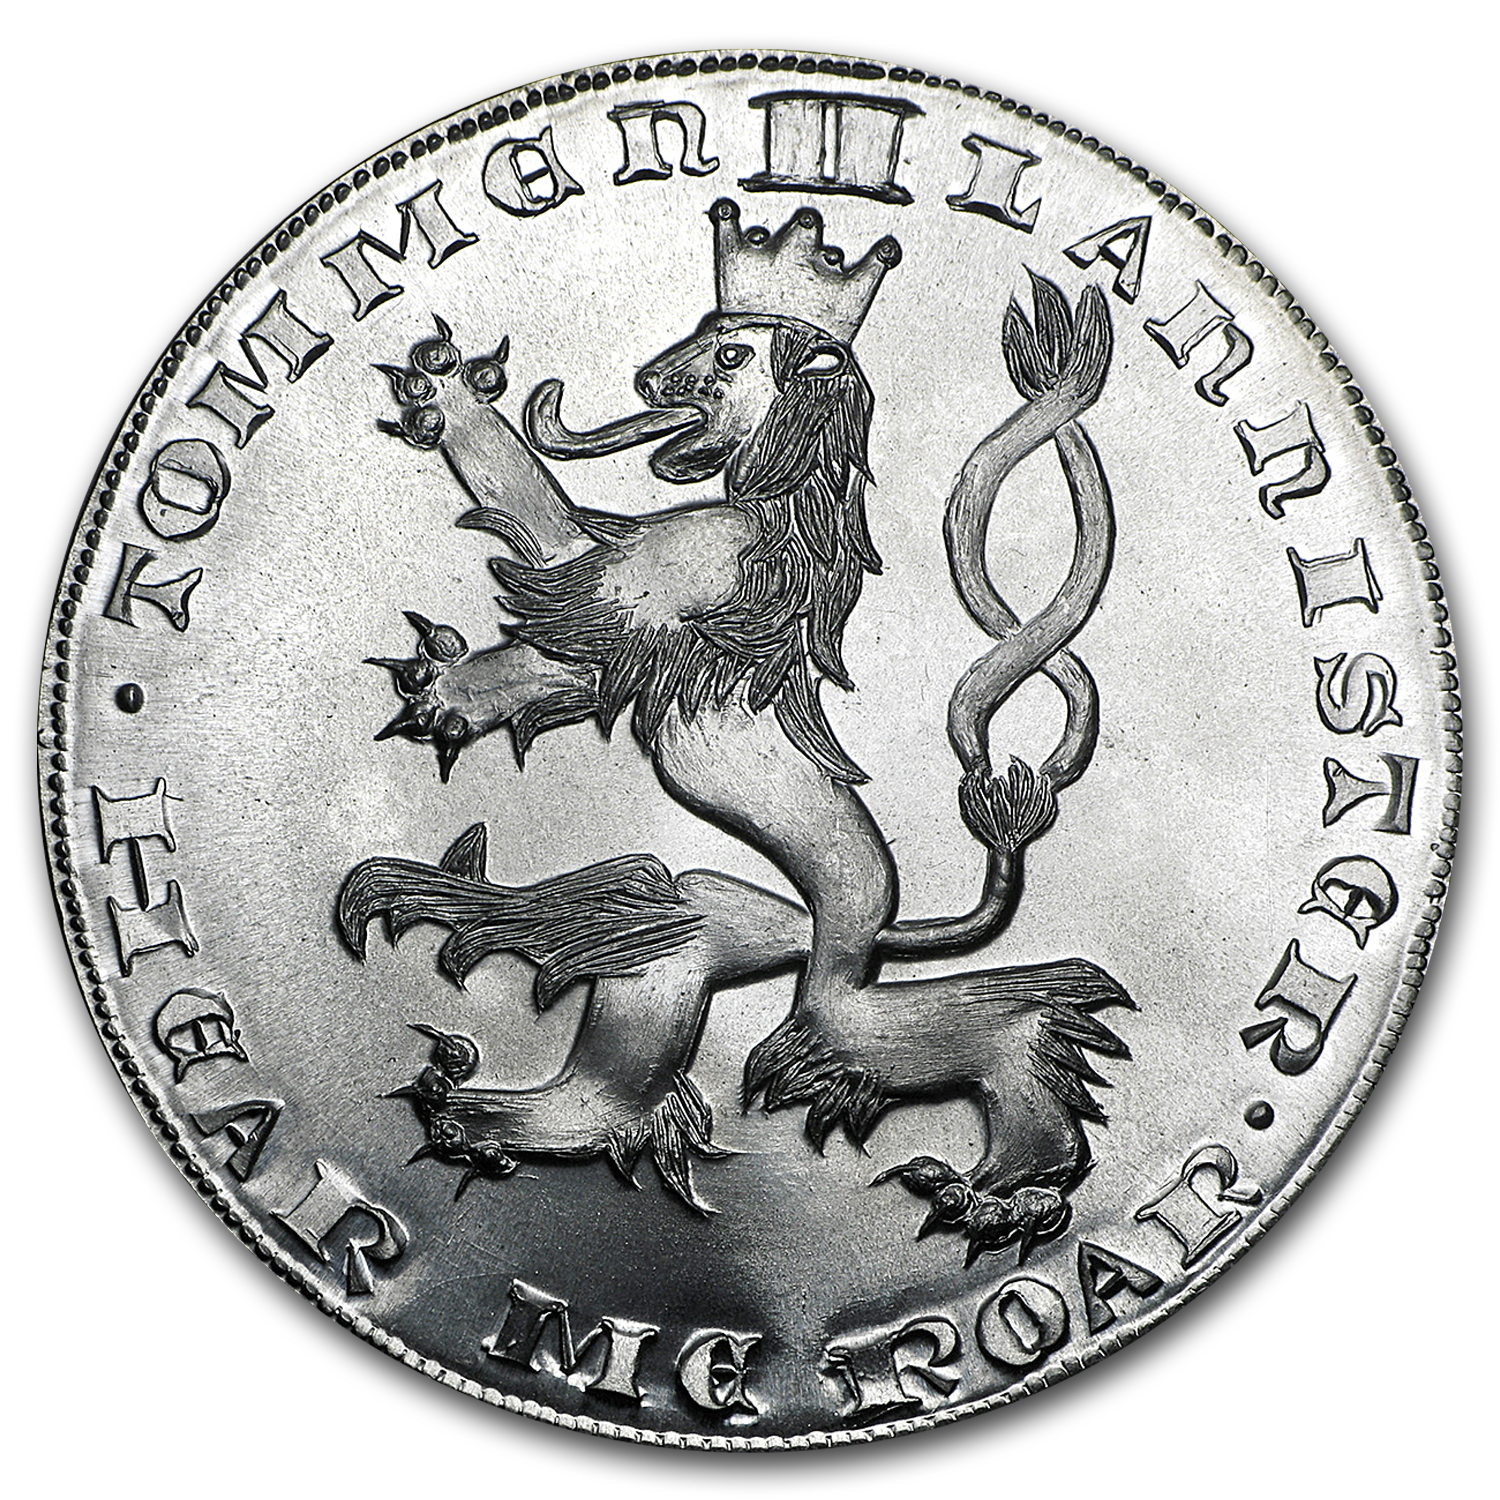 Silver Round - A Game Of Thrones Tommen II Lannister Silver Moon